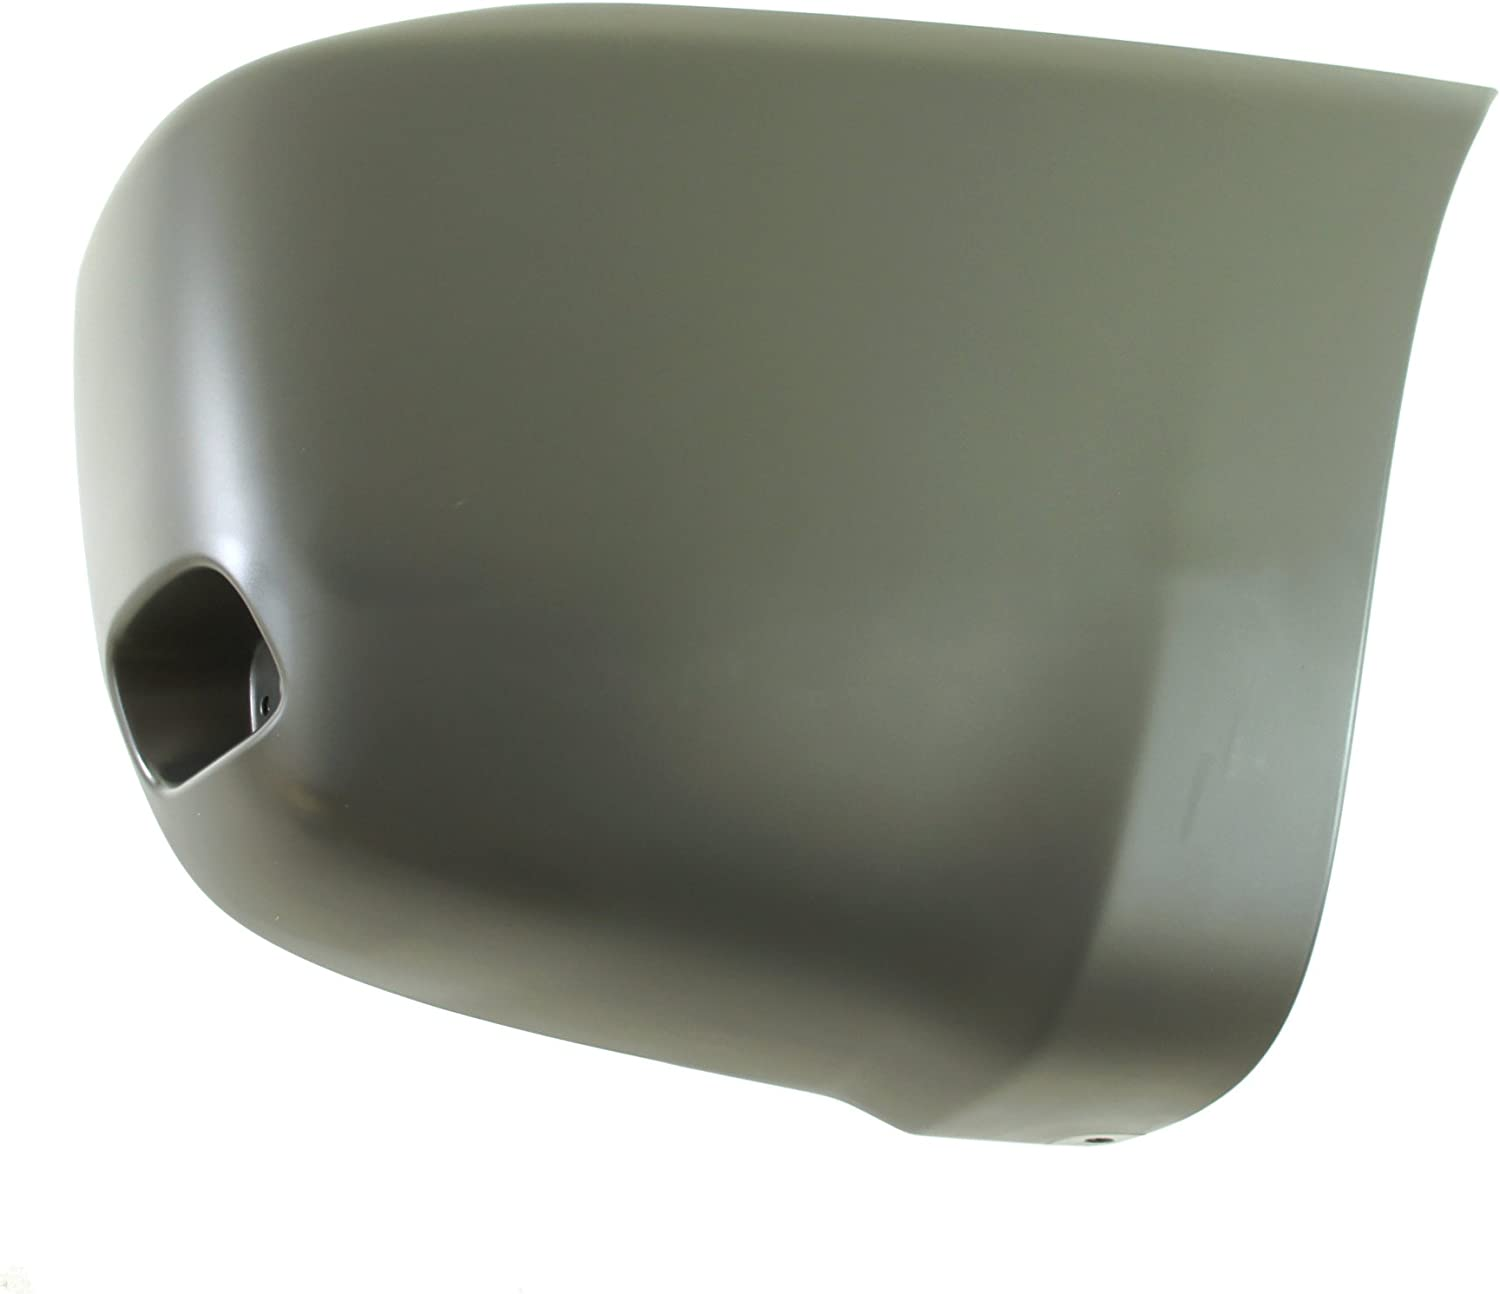 Genuine Toyota Parts 52575-48031 Passenger Side Rear Bumper Cover Support